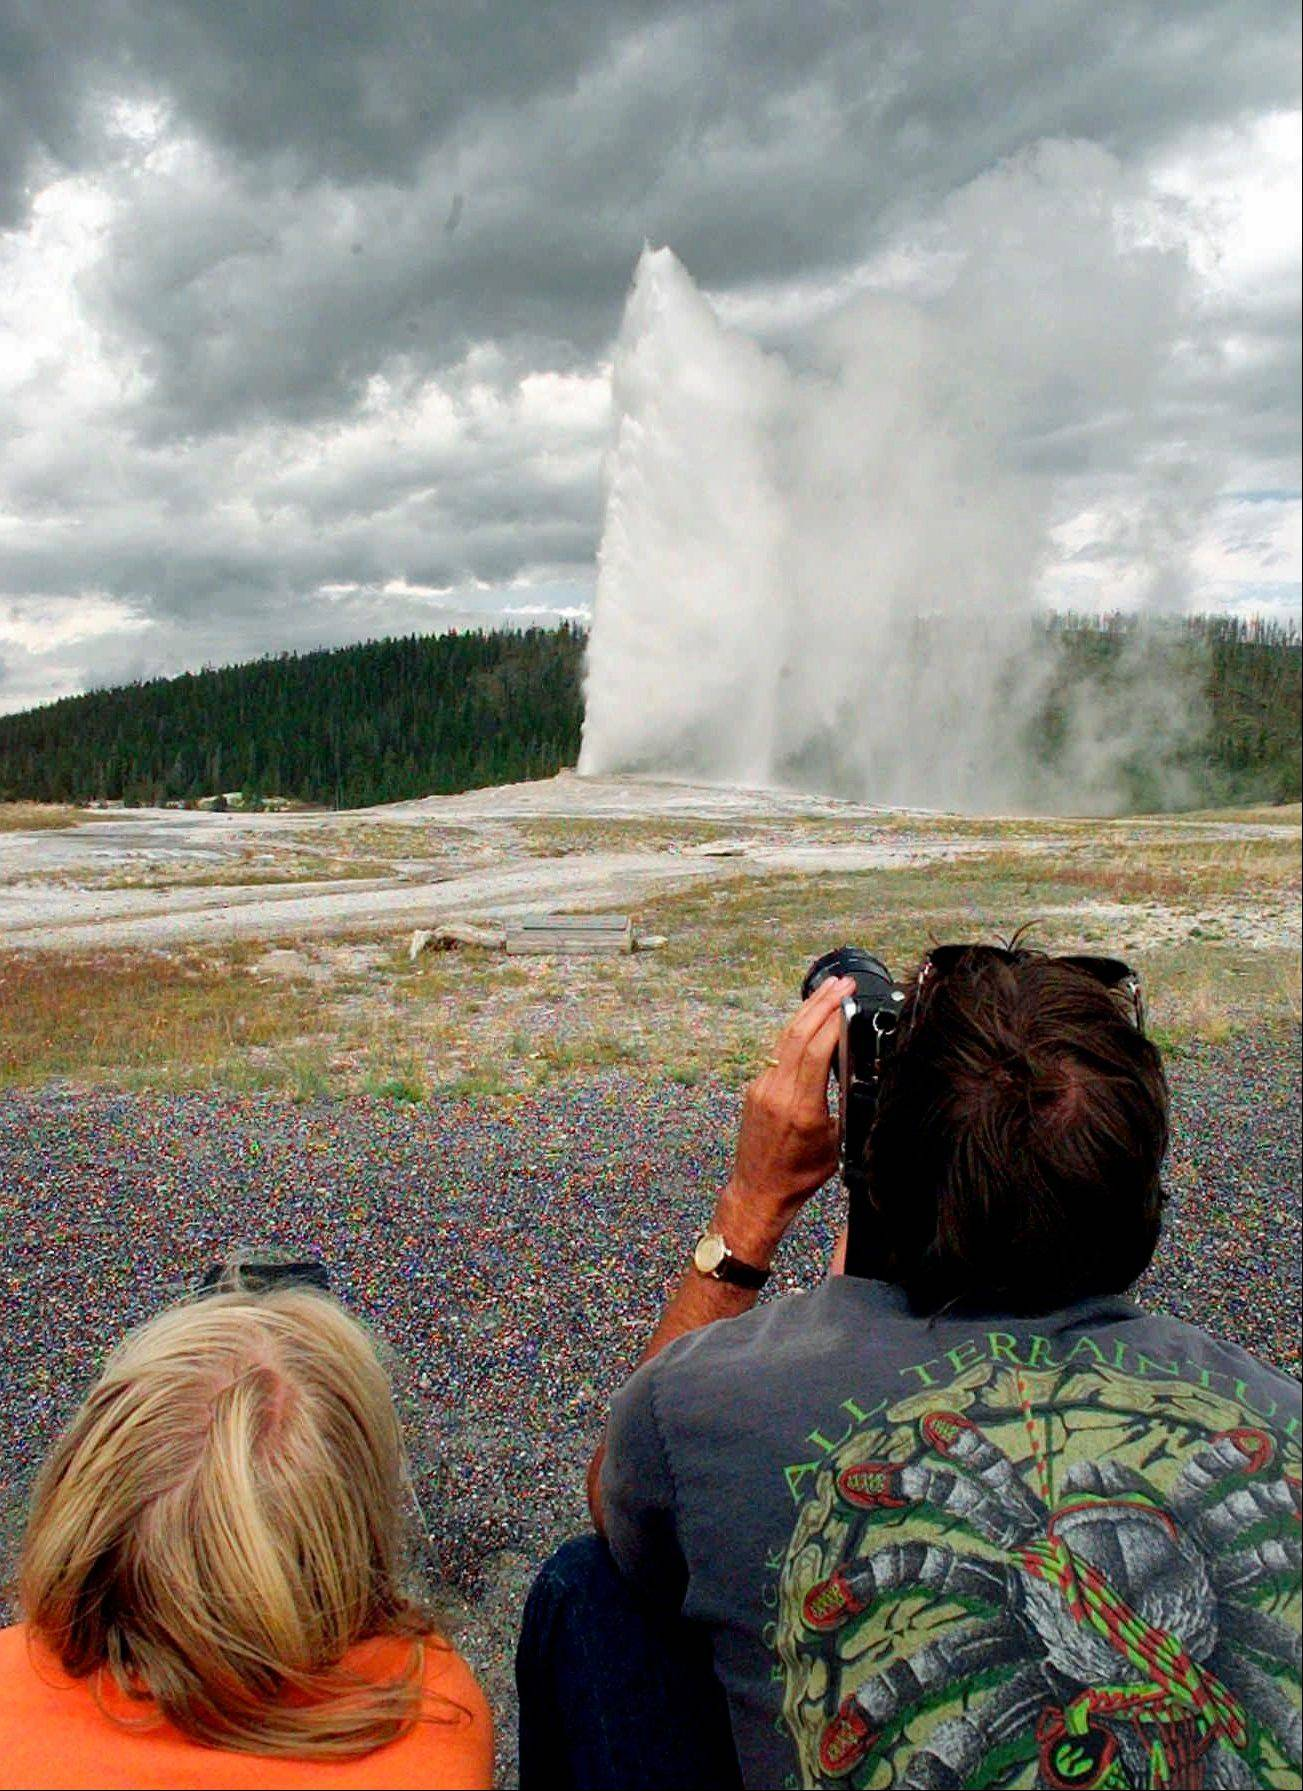 Visitors photograph the Old Faithful geyser at Yellowstone National Park in Wyoming. Hundreds of small earthquakes at Yellowstone National Park in recent weeks have been an unsettling reminder for some people that underneath the park�s famous geysers and majestic scenery lurks one of the world�s biggest volcanoes.